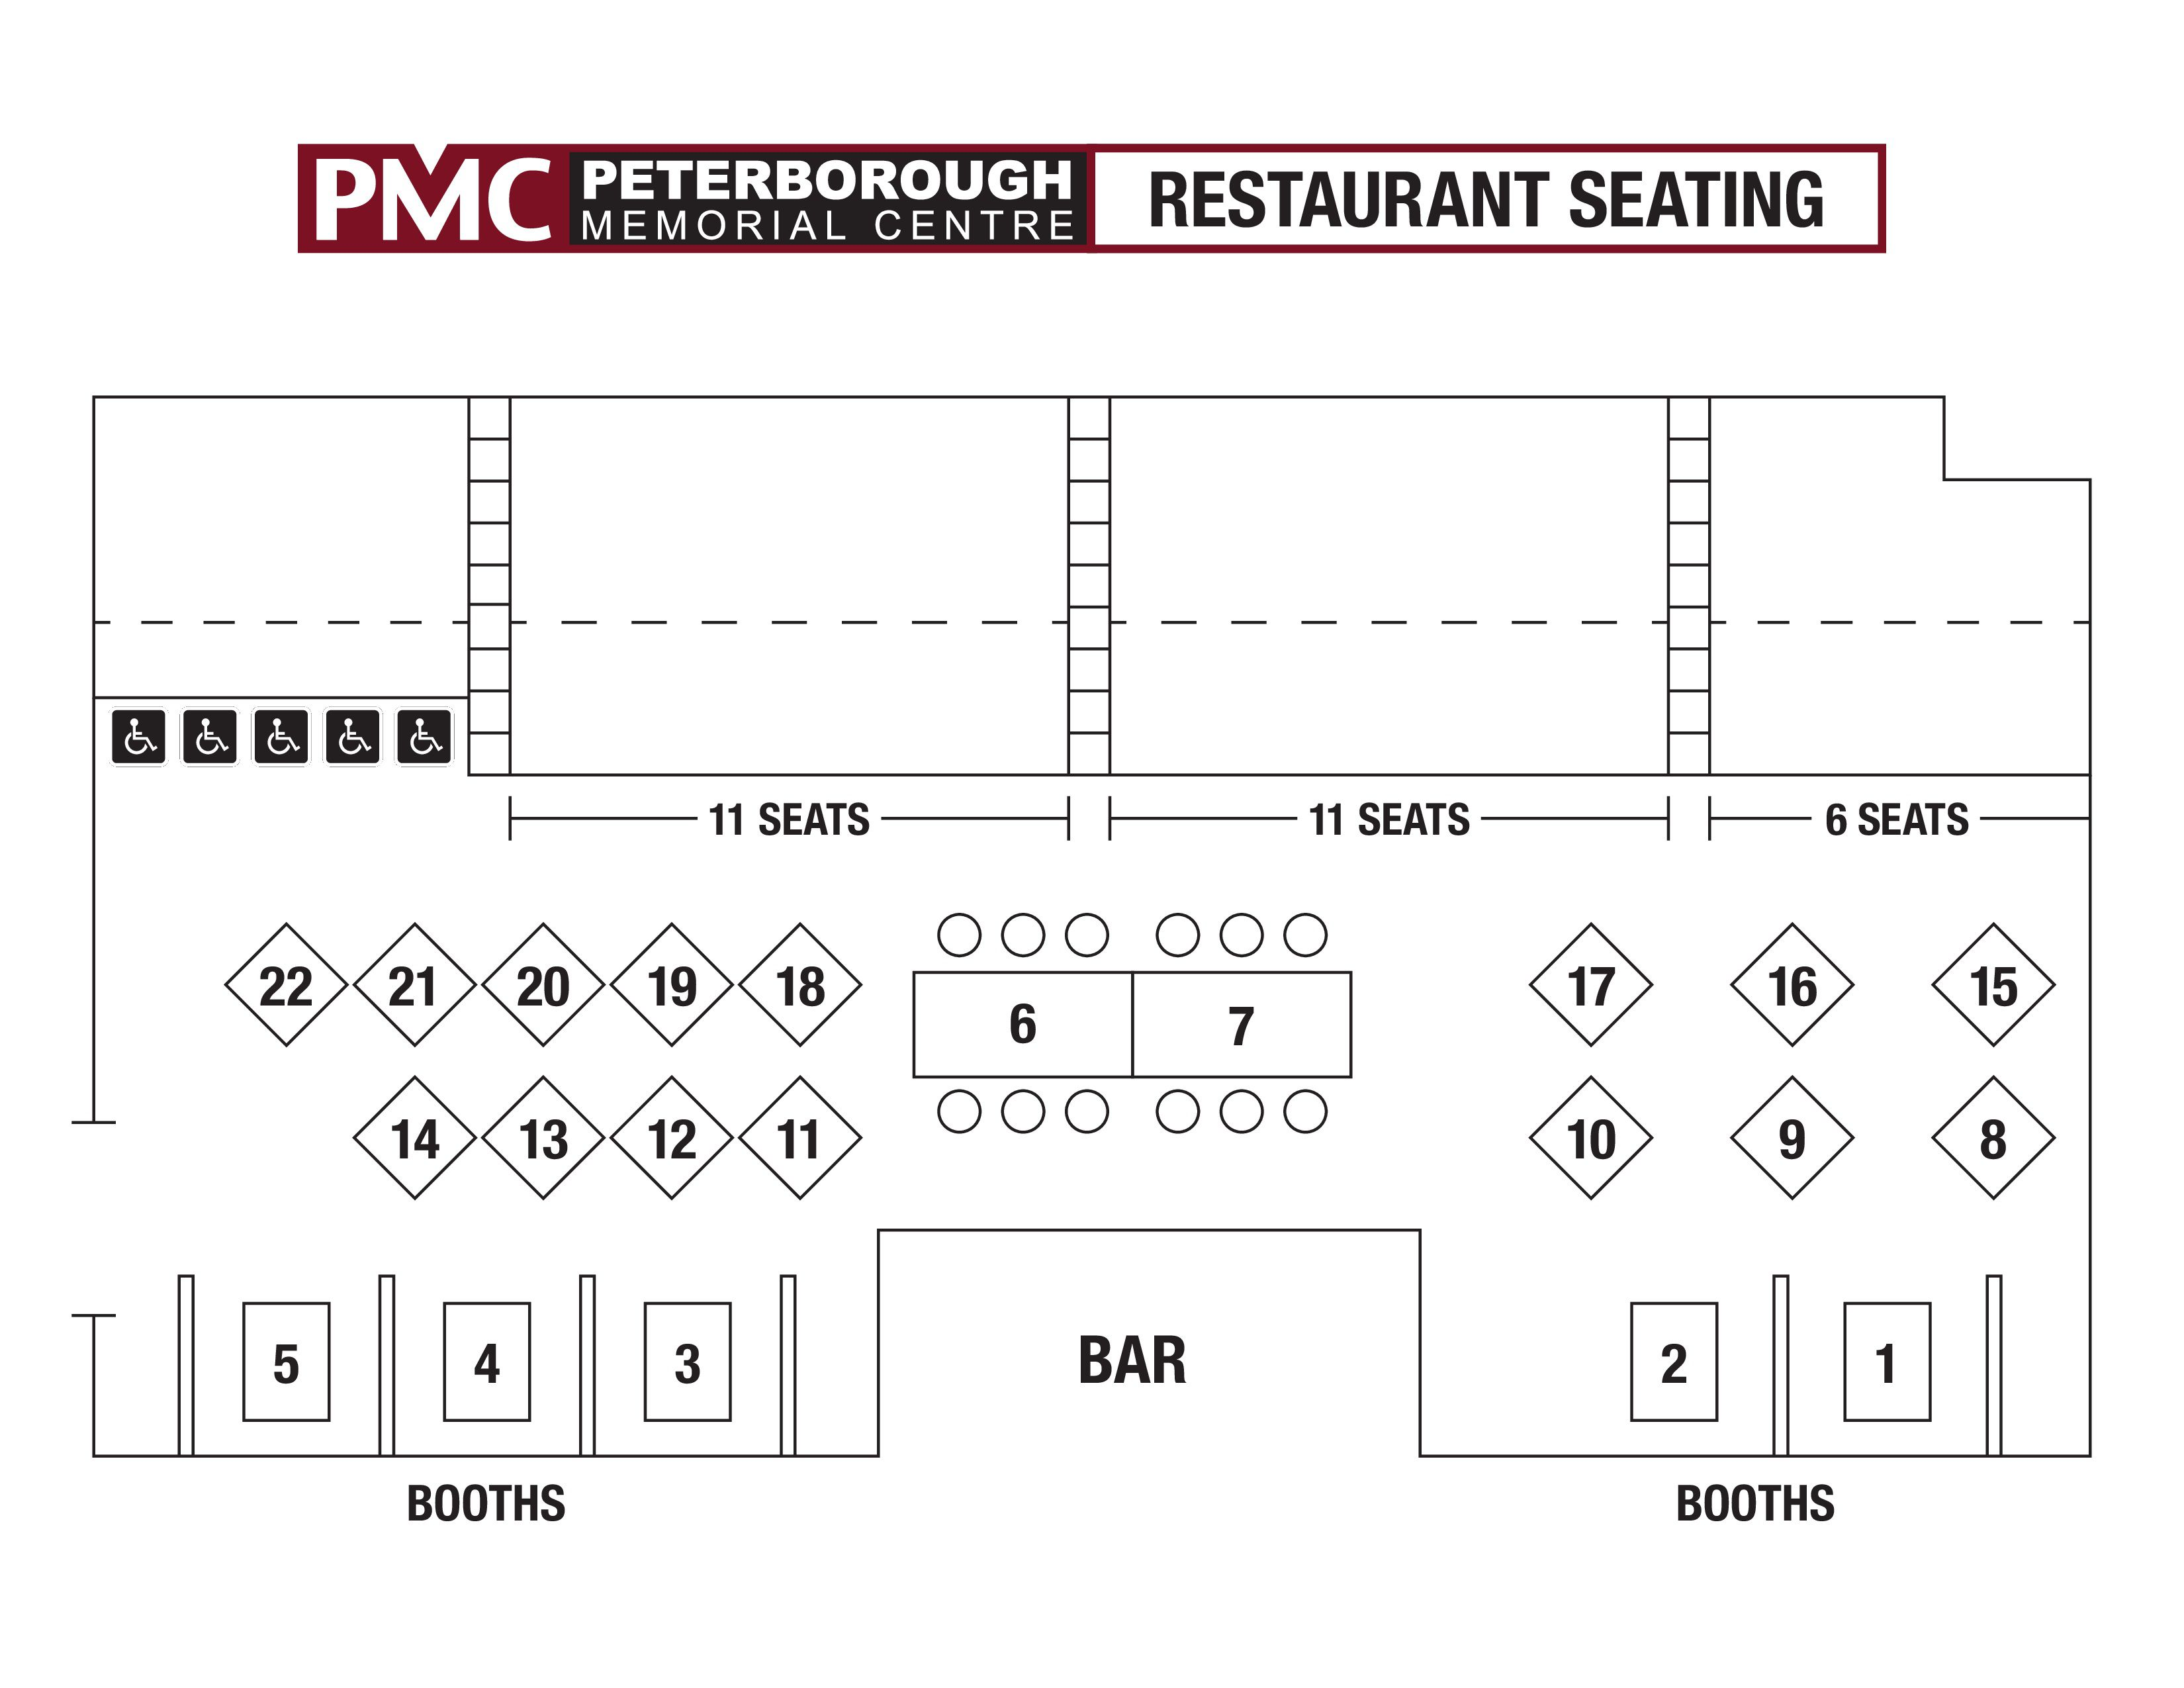 006 Impressive Restaurant Seating Chart Template Sample  Software Excel WordFull